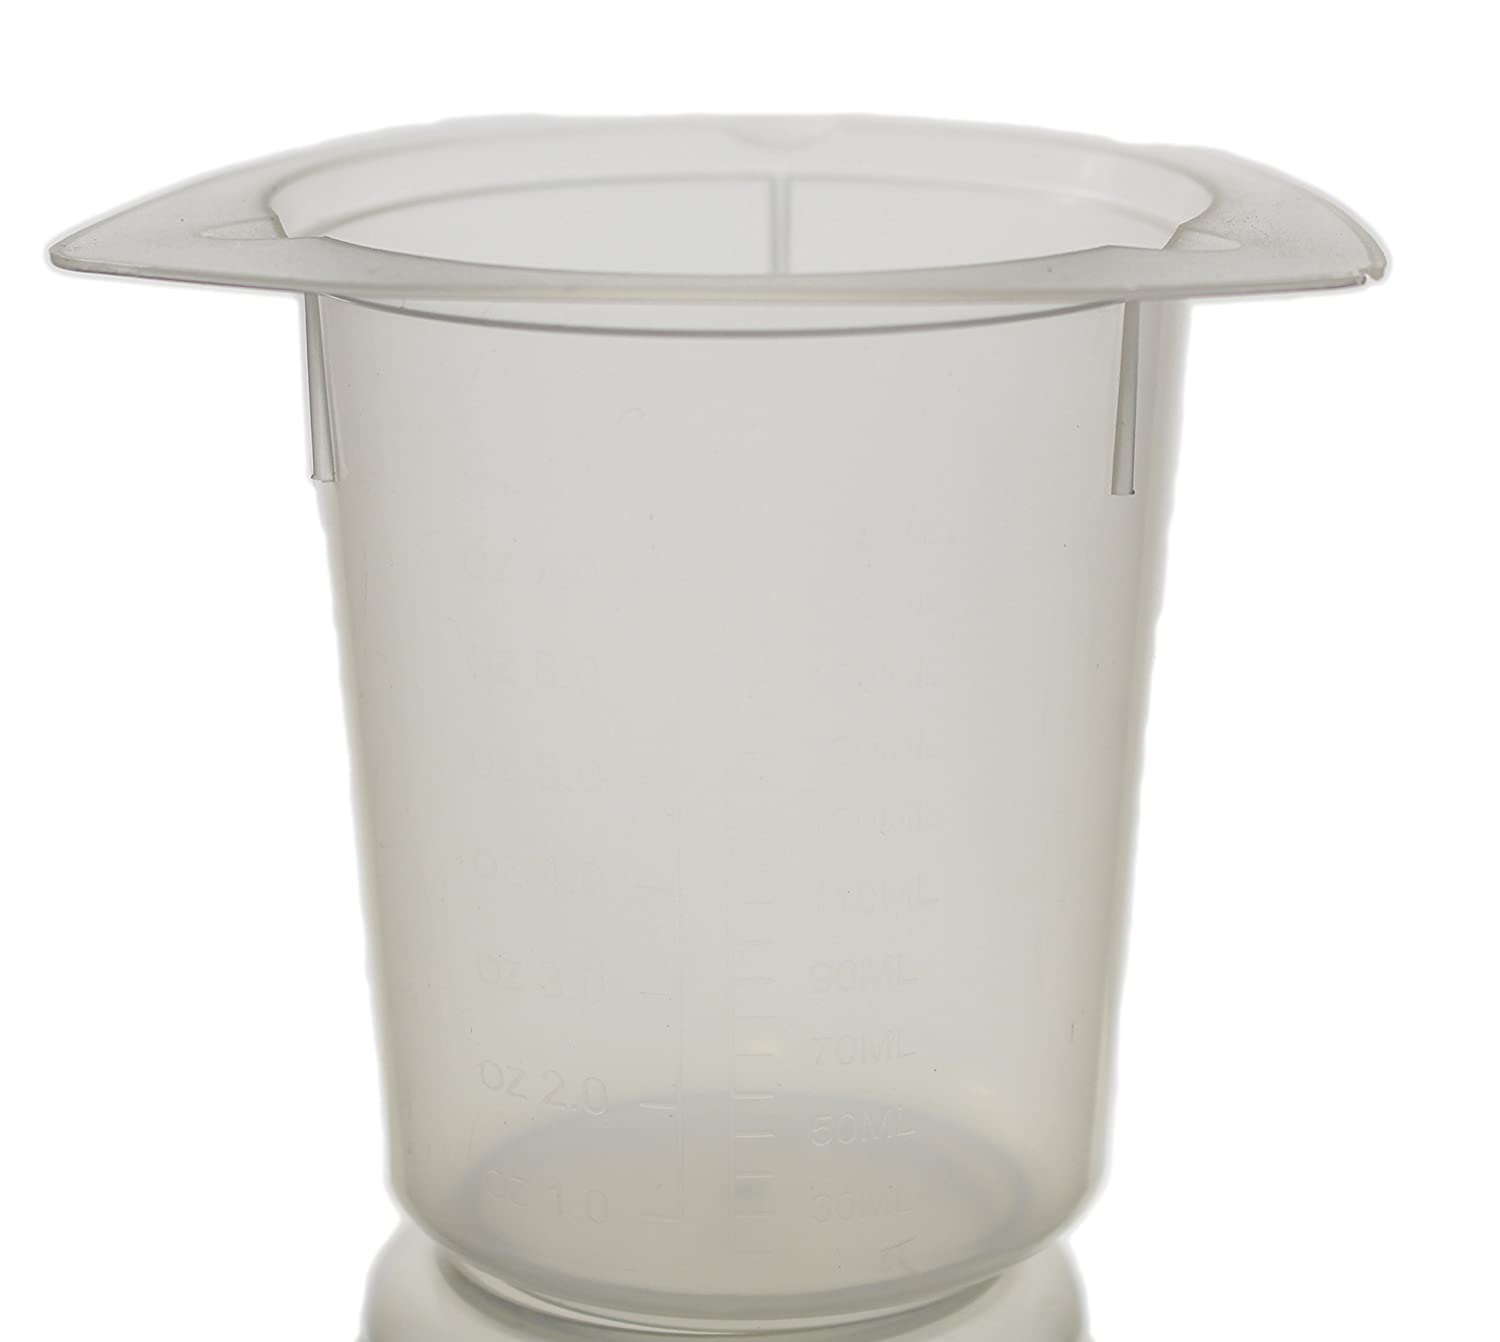 Tri-Corner Beaker, PP, 1000 ml, Reusable, Autoclavable, Pack of 10 Globe Scientific Inc.